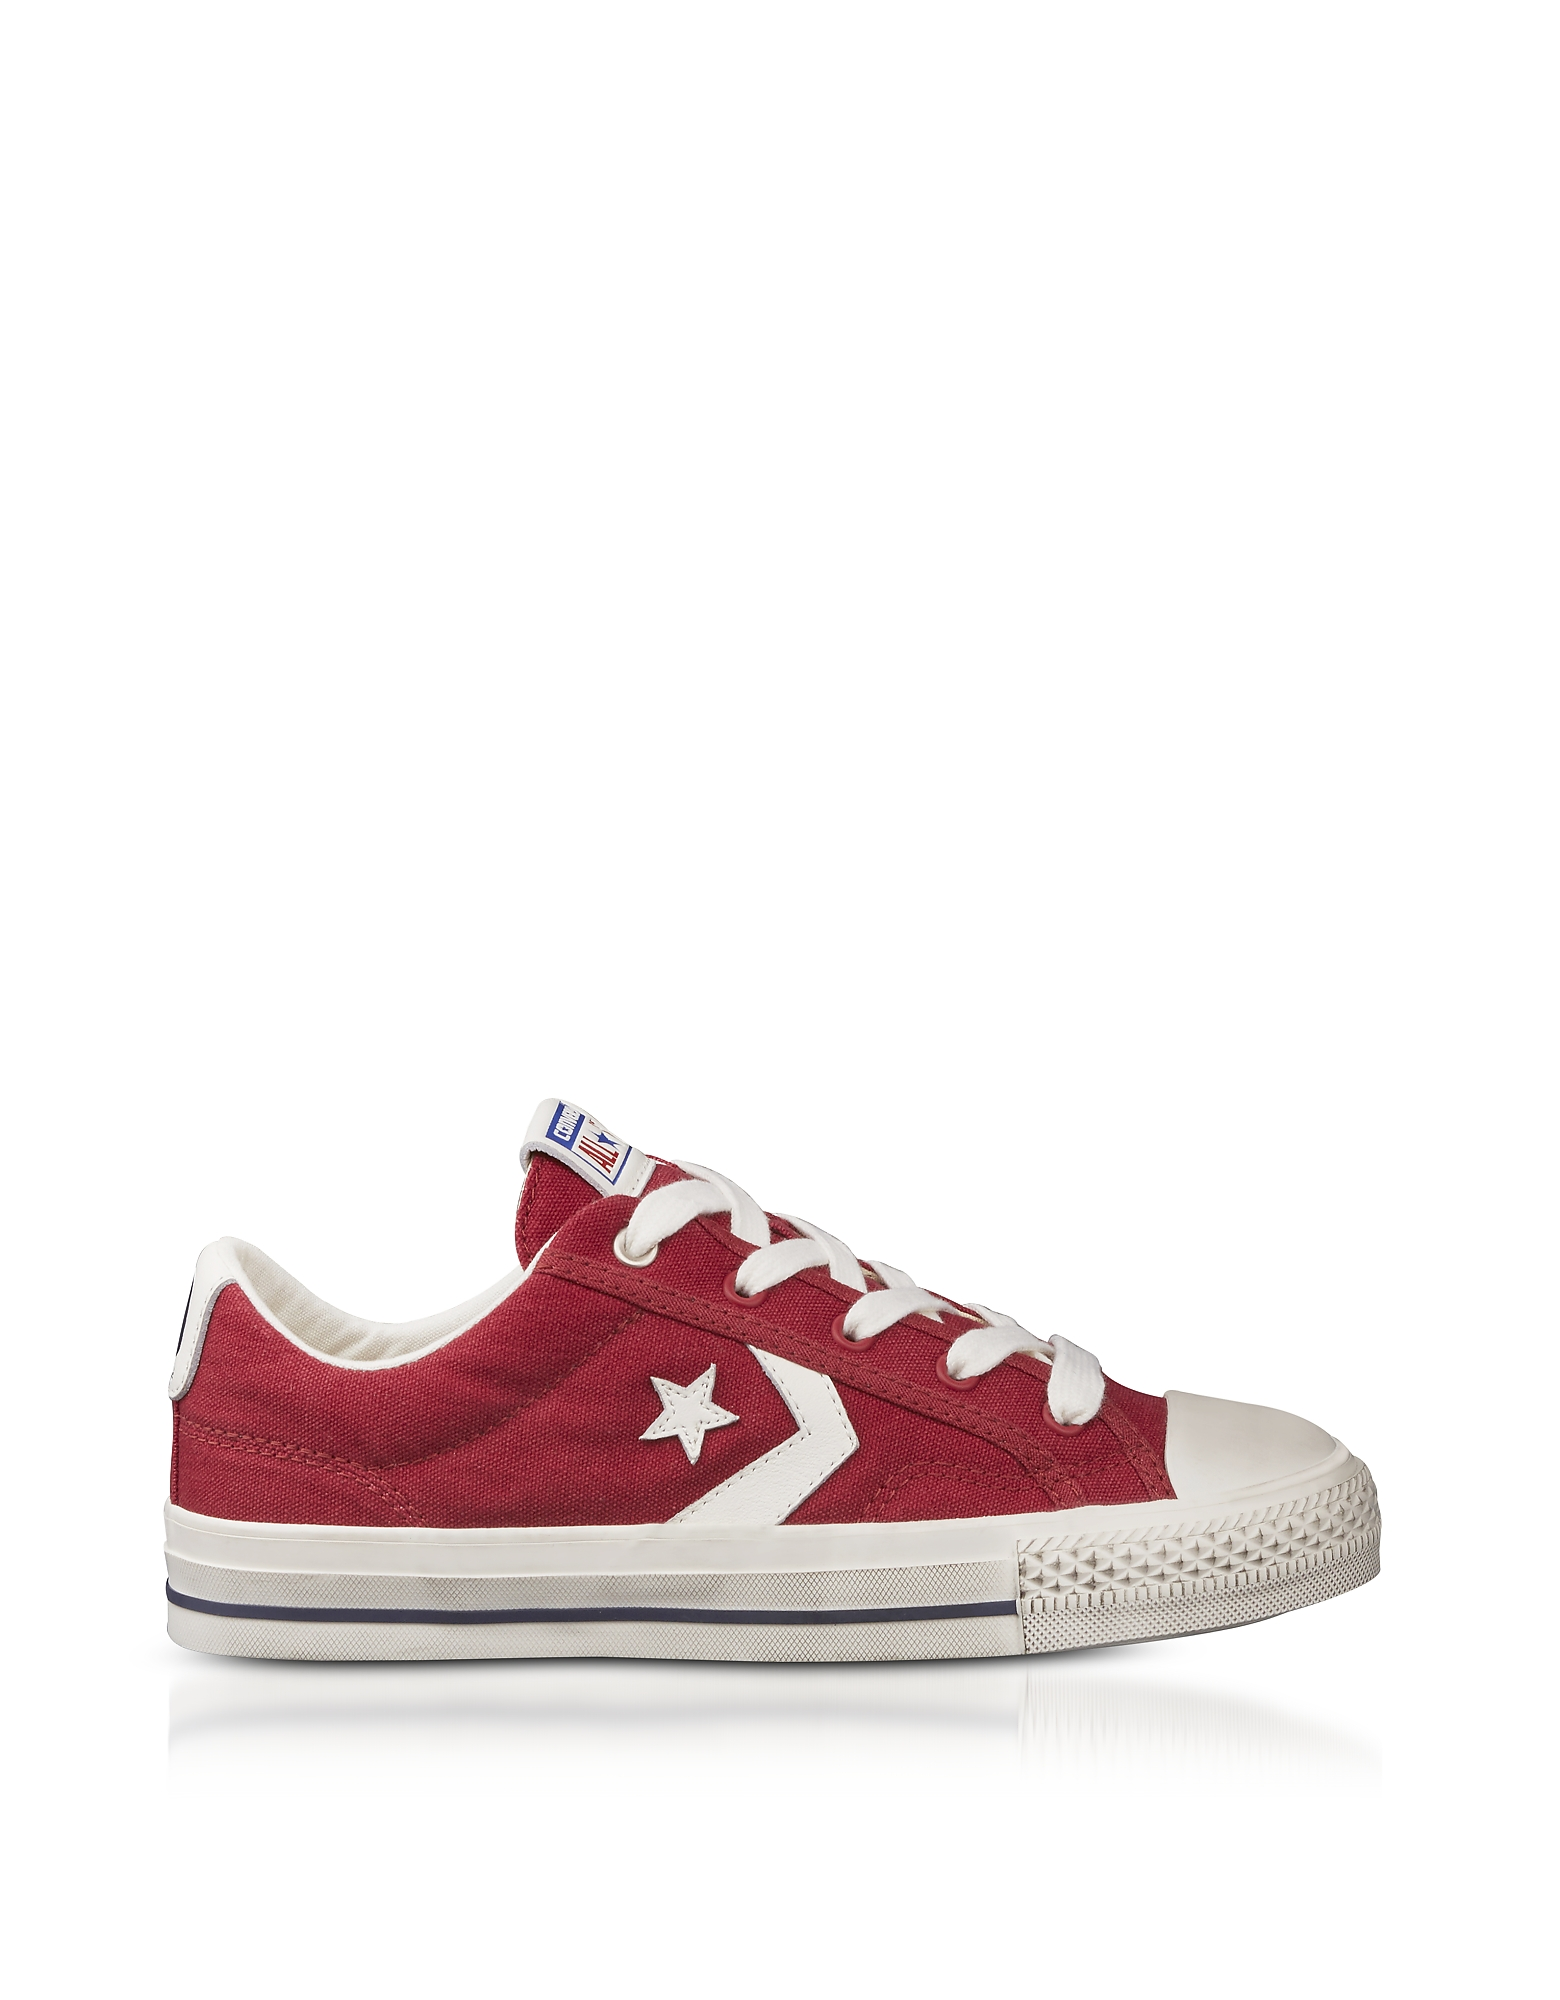 Converse Limited Edition Shoes, Red Star Player Distressed Ox Canvas Men's Sneakers